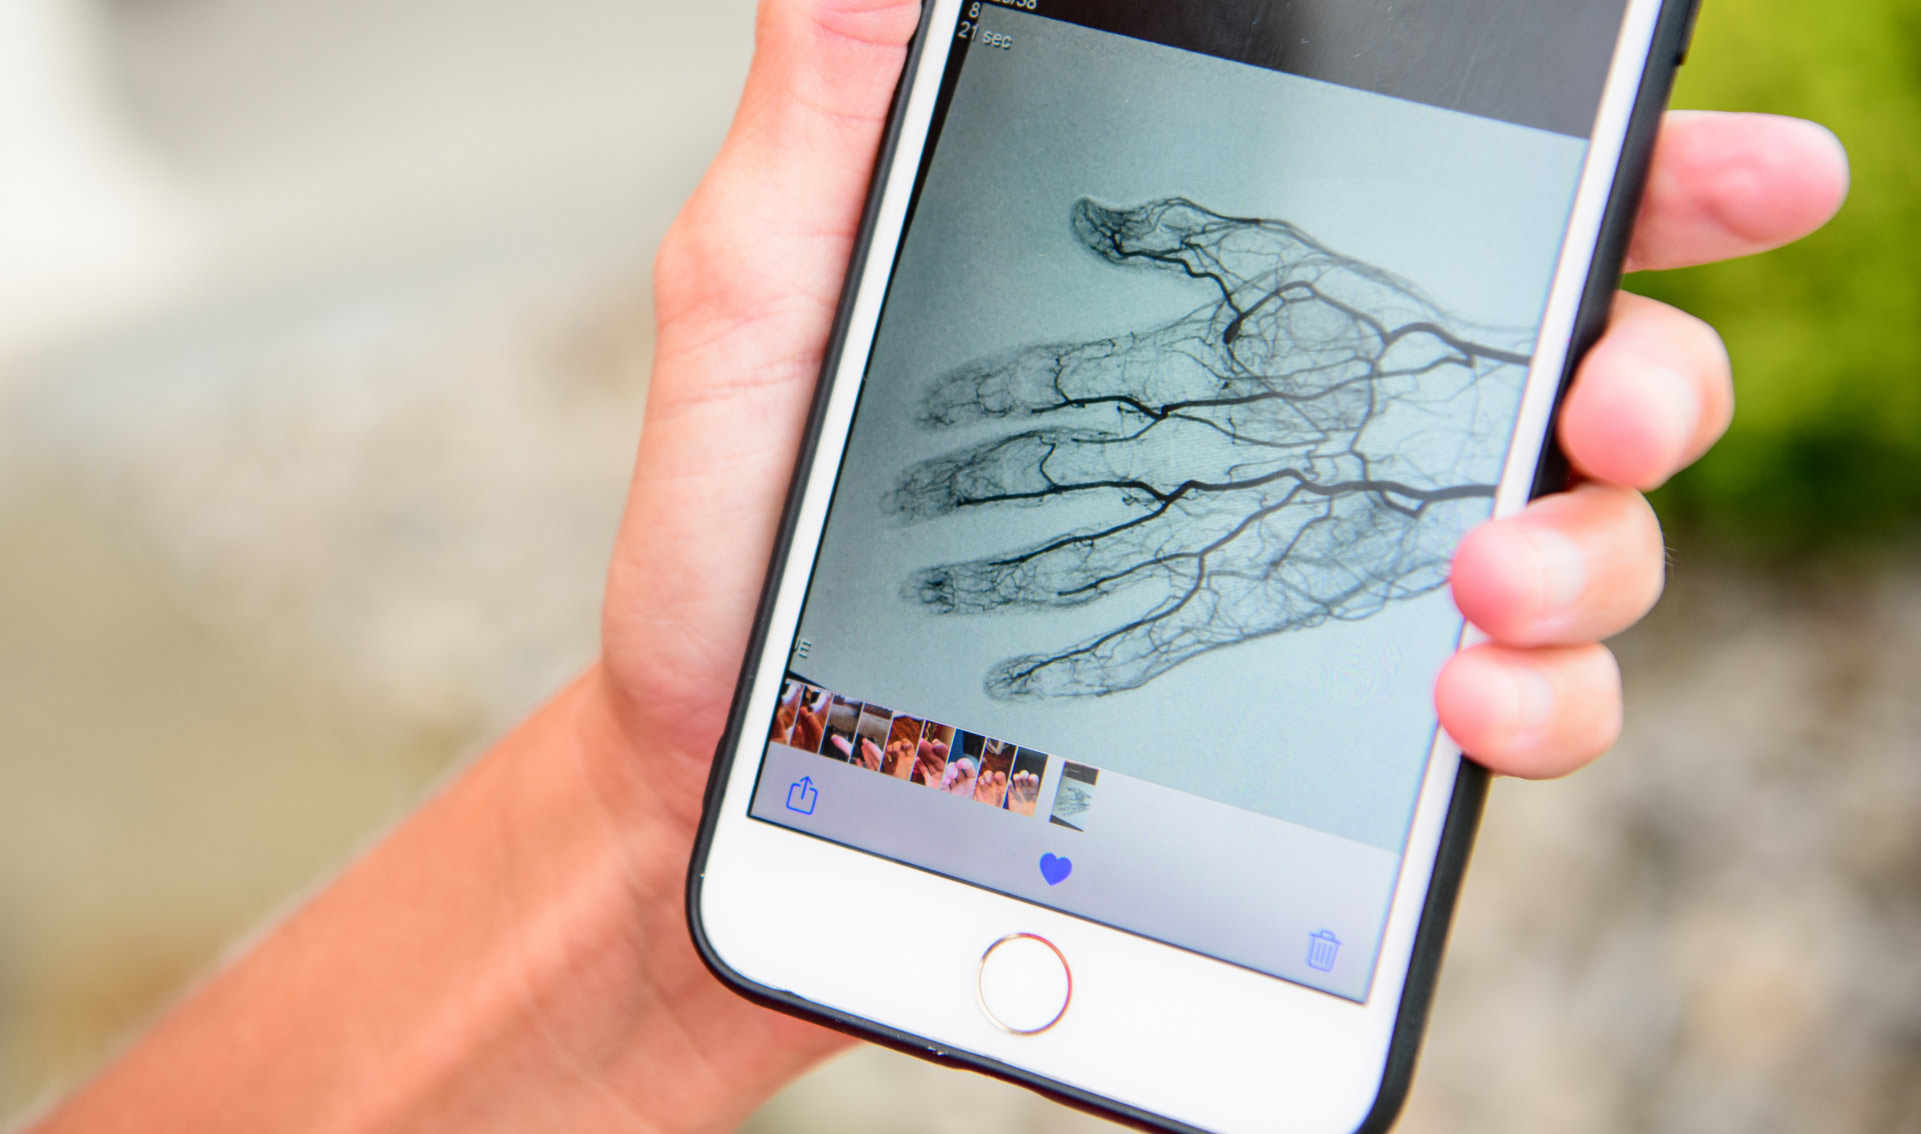 Angela shows an arteriogram—a scan showing the veins and blood flow—of her hand on her phone.